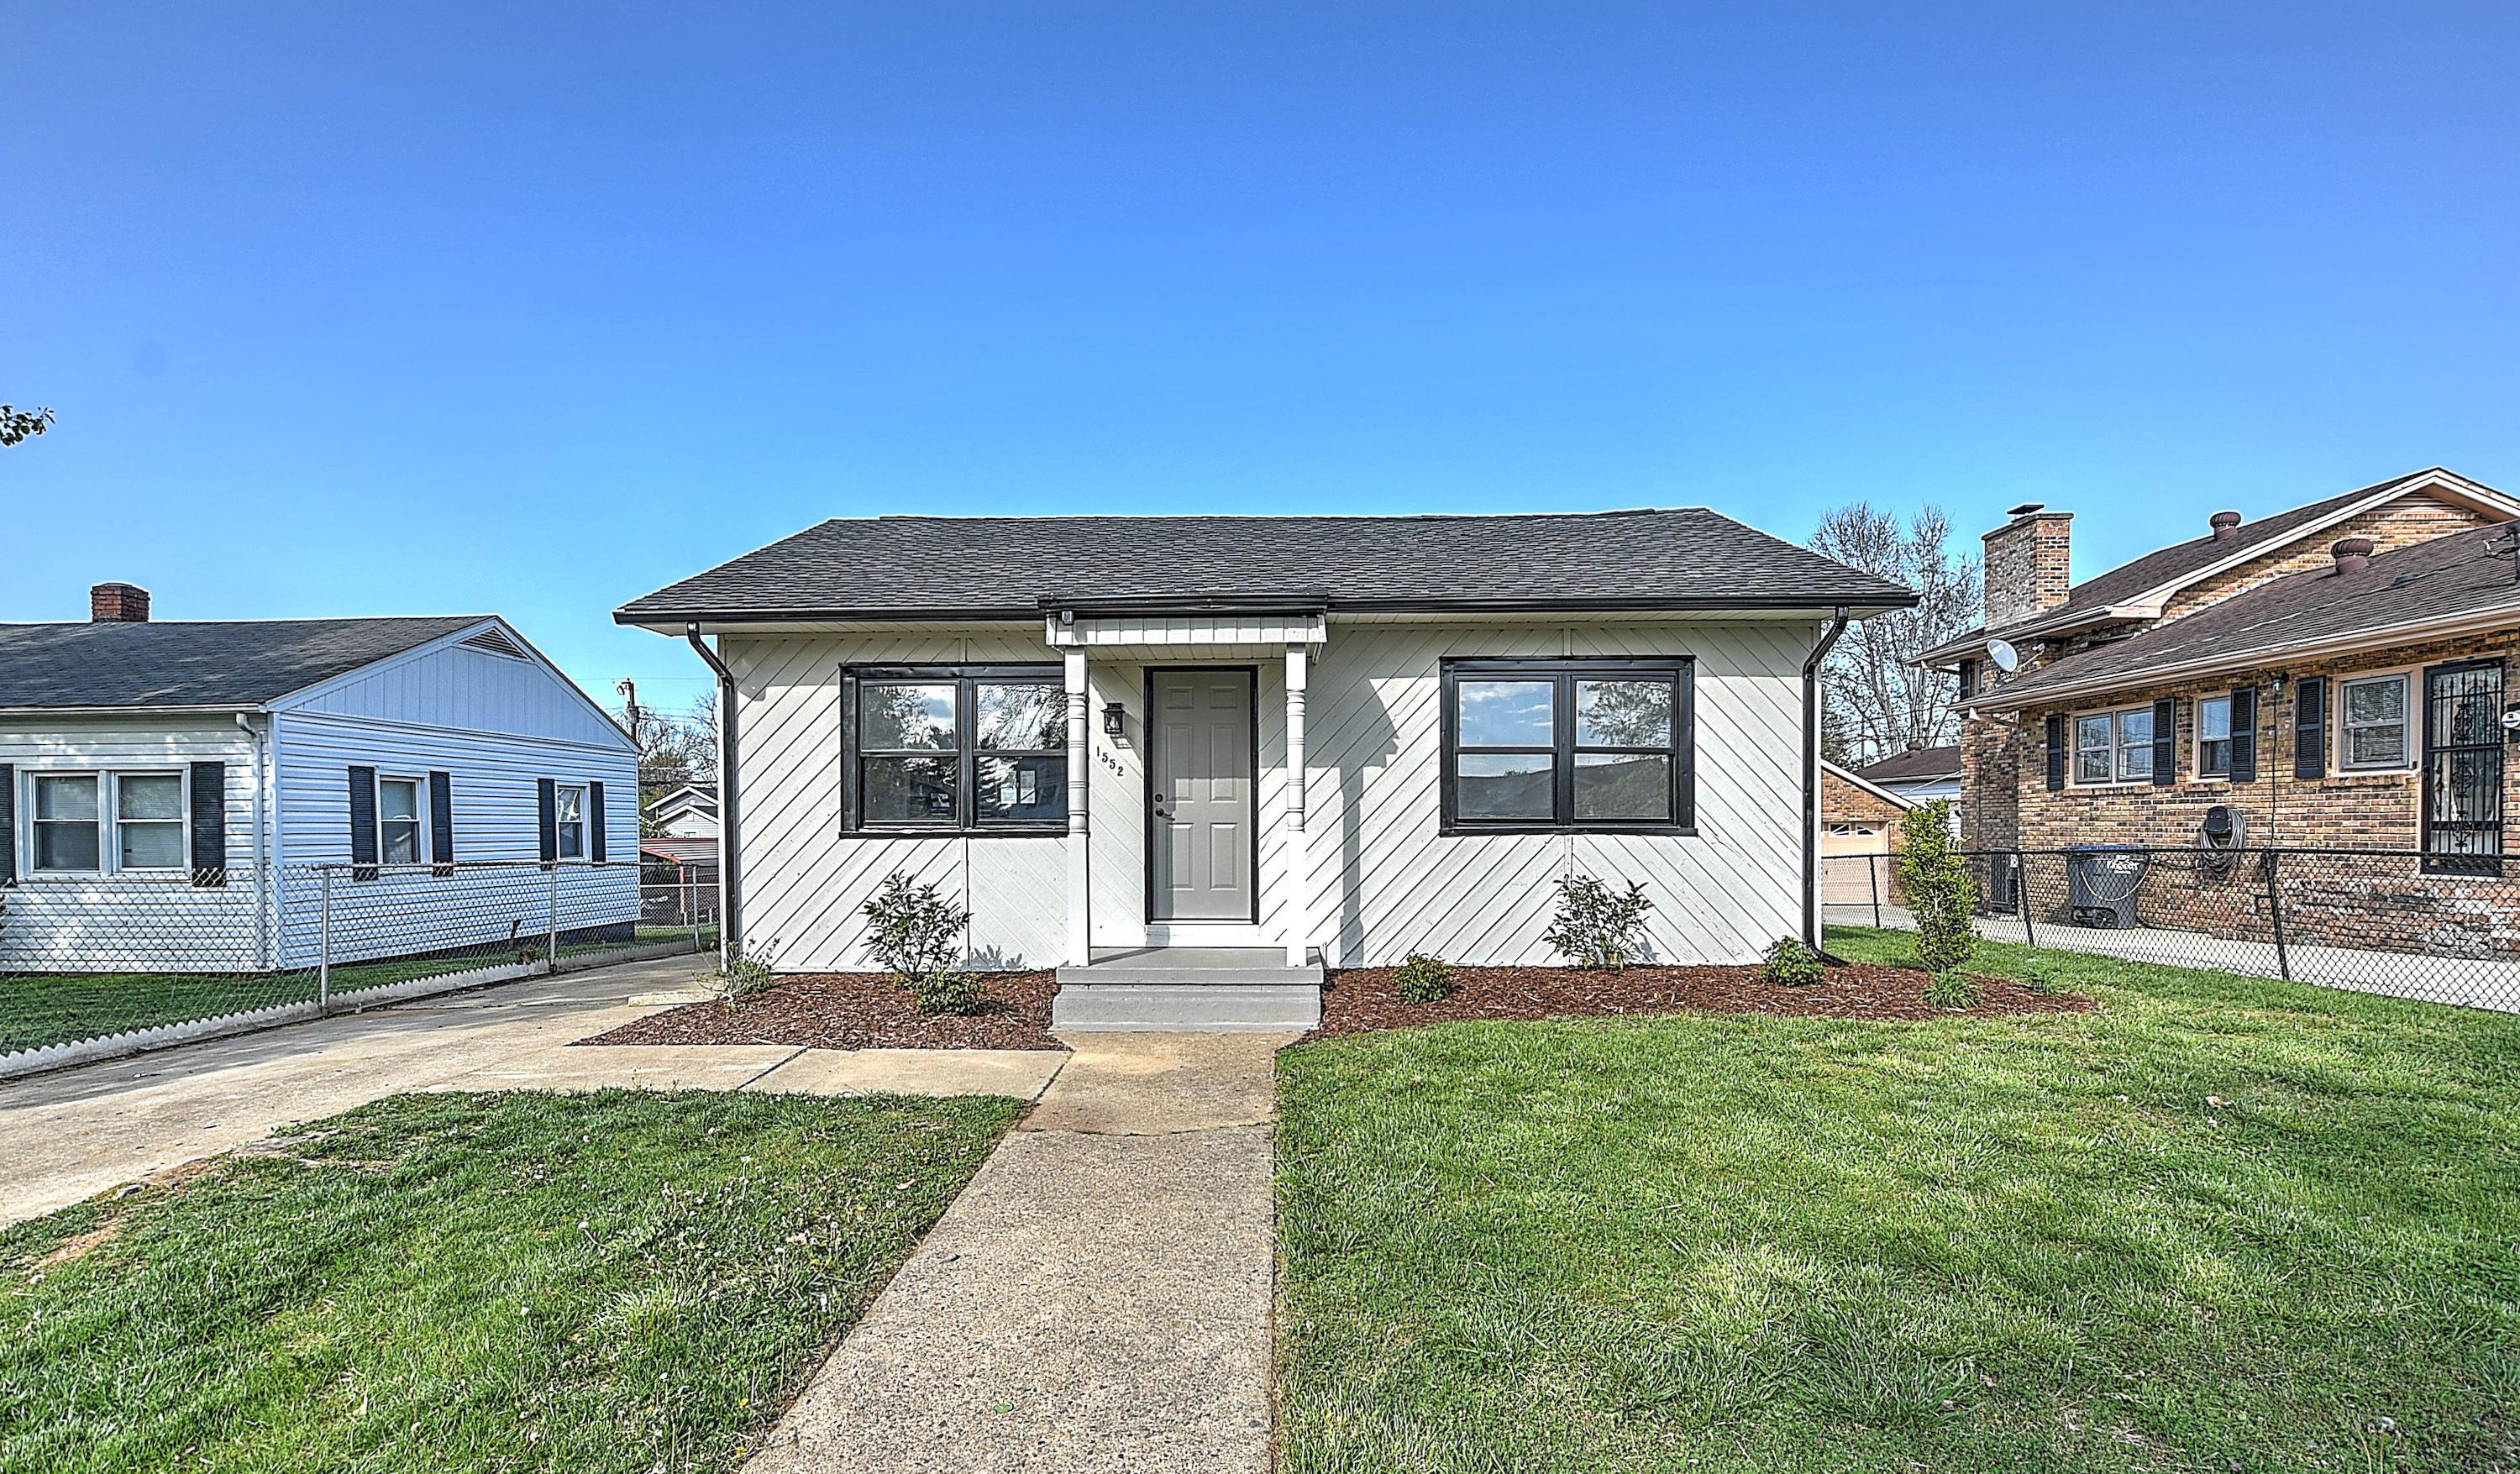 1552 Redwood Drive, Kingsport, Tennessee 37664, 2 Bedrooms Bedrooms, ,1 BathroomBathrooms,Single Family,For Sale,1552 Redwood Drive,9920933